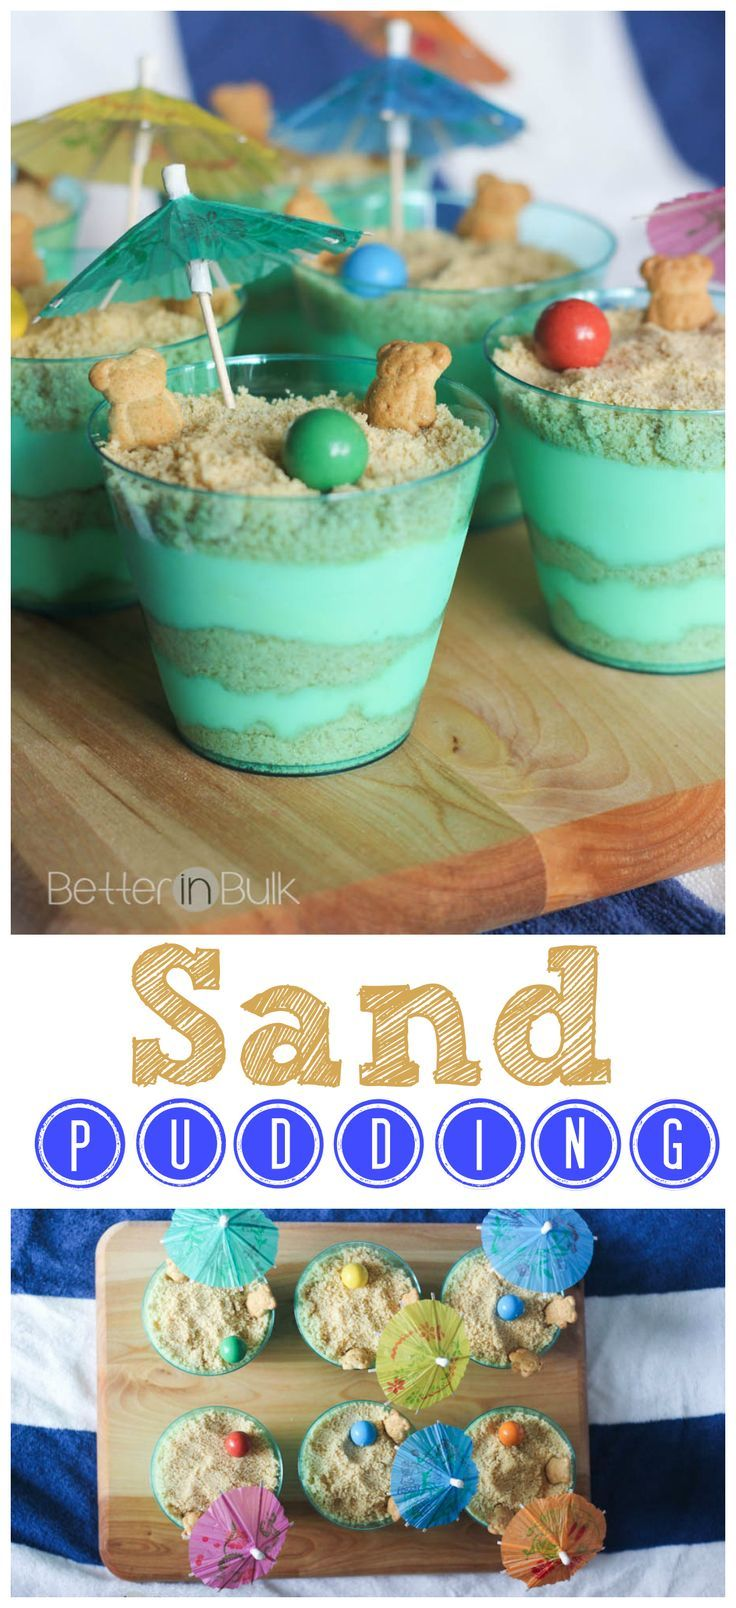 Sand Pudding Recipe - Vanilla Oreos and vanilla pudding with a beach twist! These fun pudding cups are as much fun to make as they are to eat! What a perfect quick dessert for a beach-themed party!